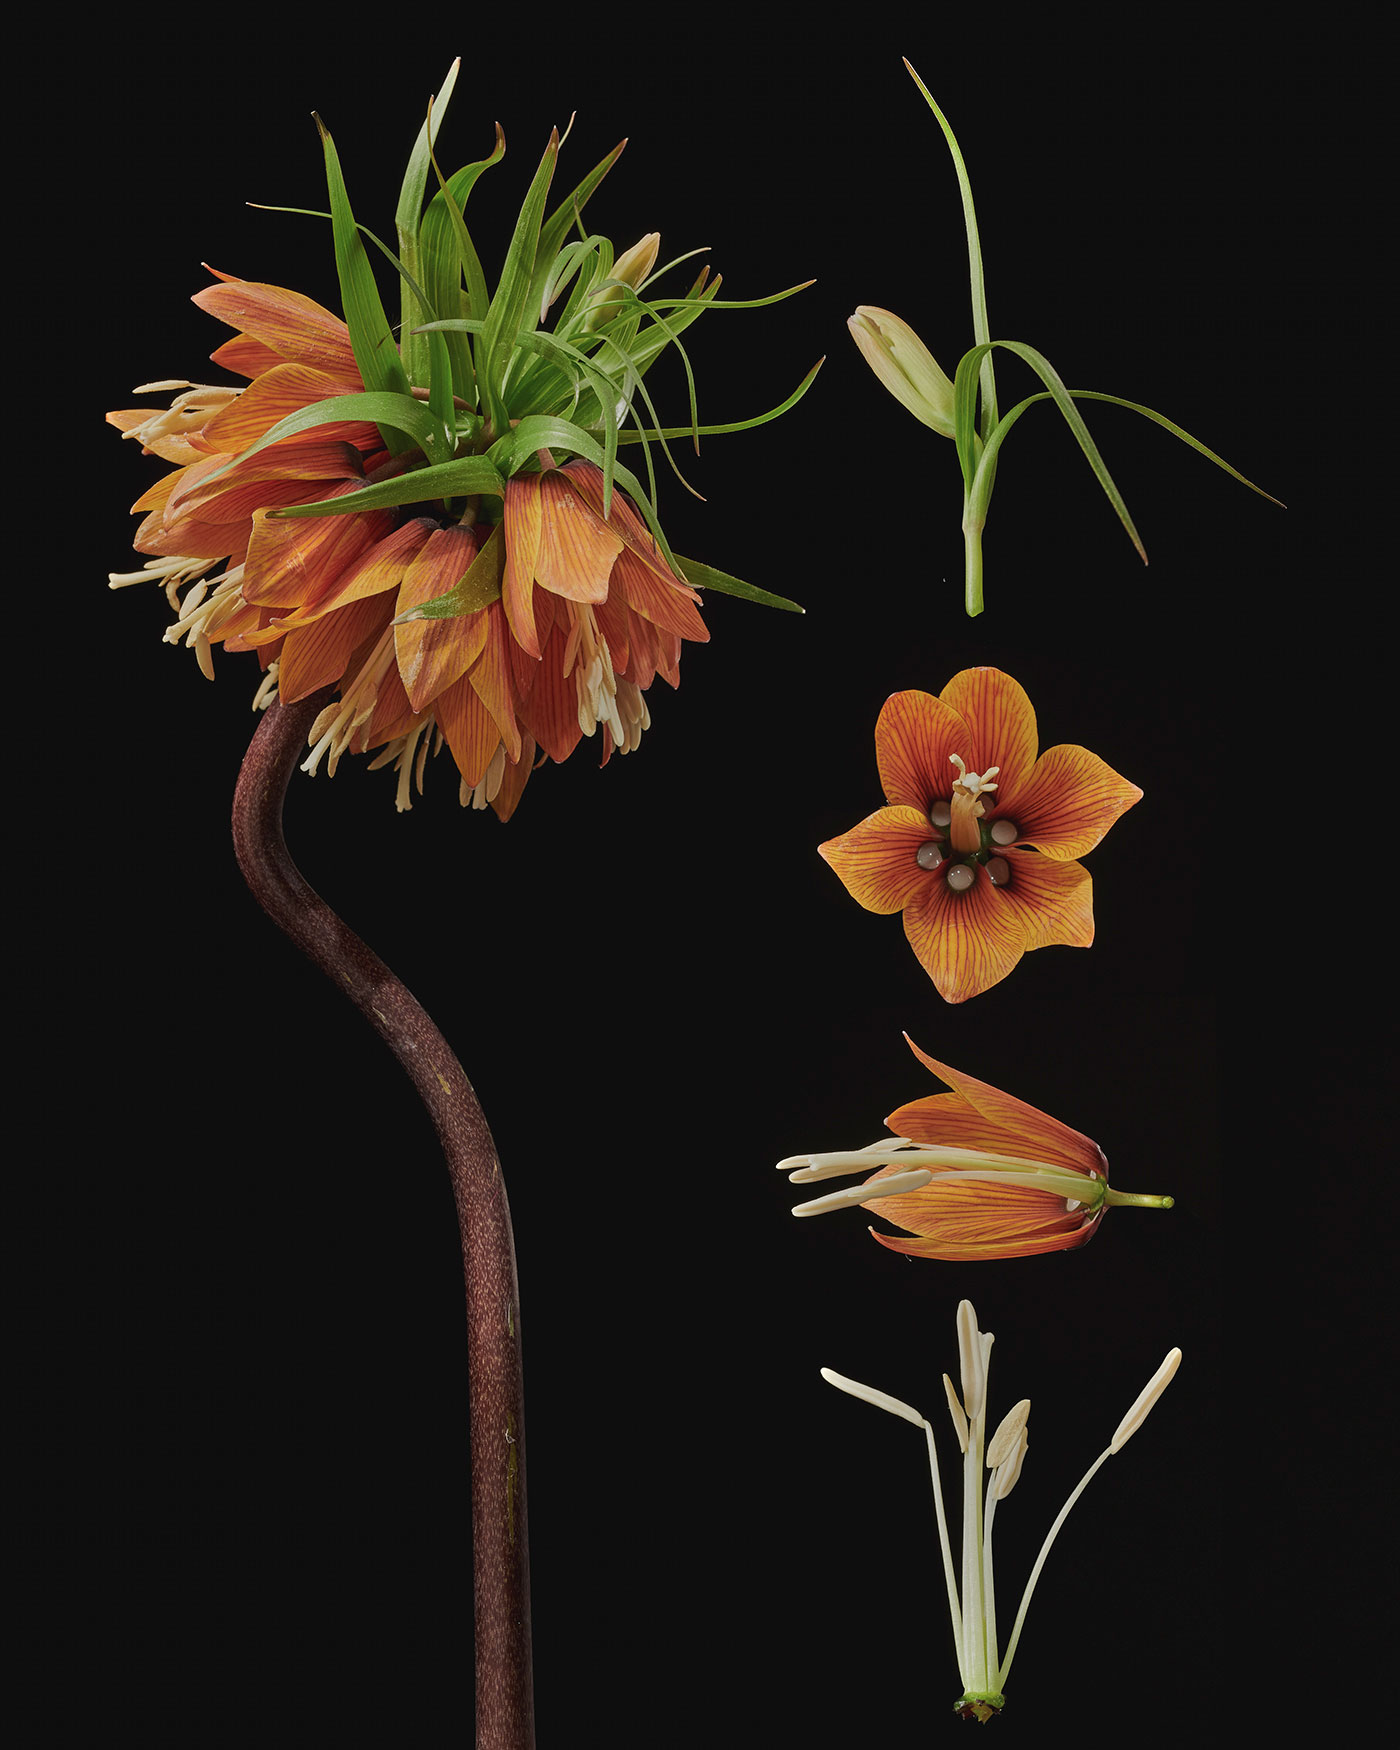 Dissecting Flowers by Tim van der Most